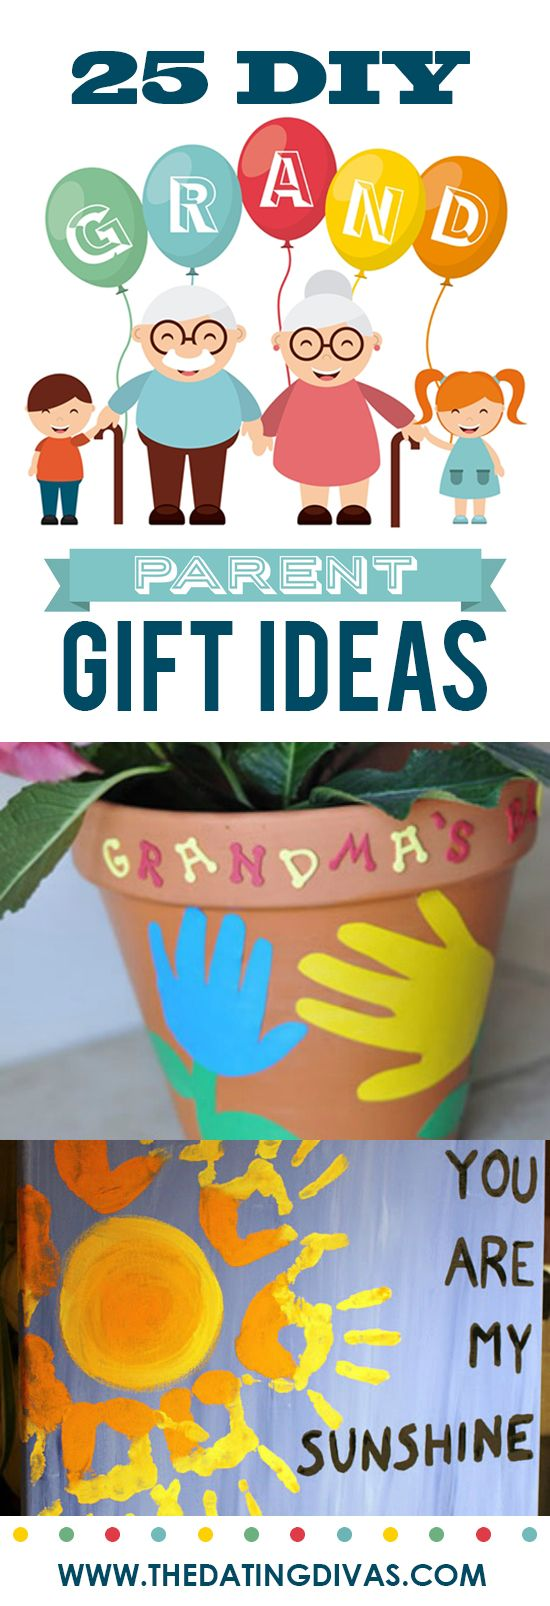 DIY gift ideas for Grandparents Day!                                                                                                                                                      More